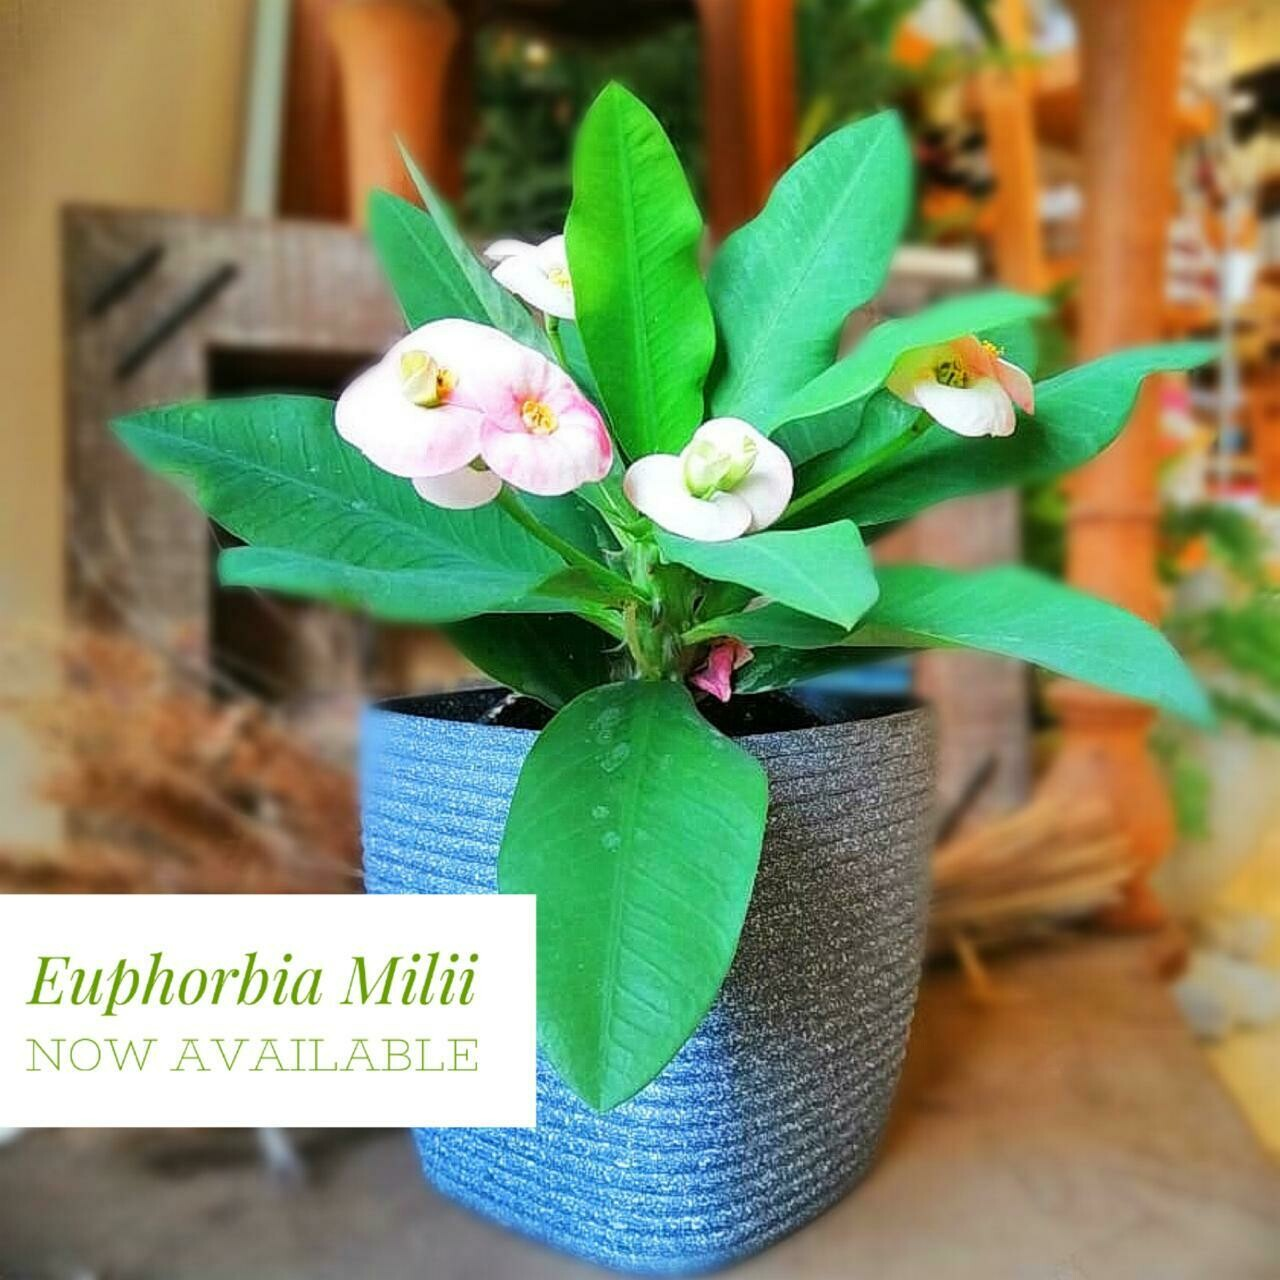 Euphorbia milii (Plant) - Nature by Marc Beyrouthy